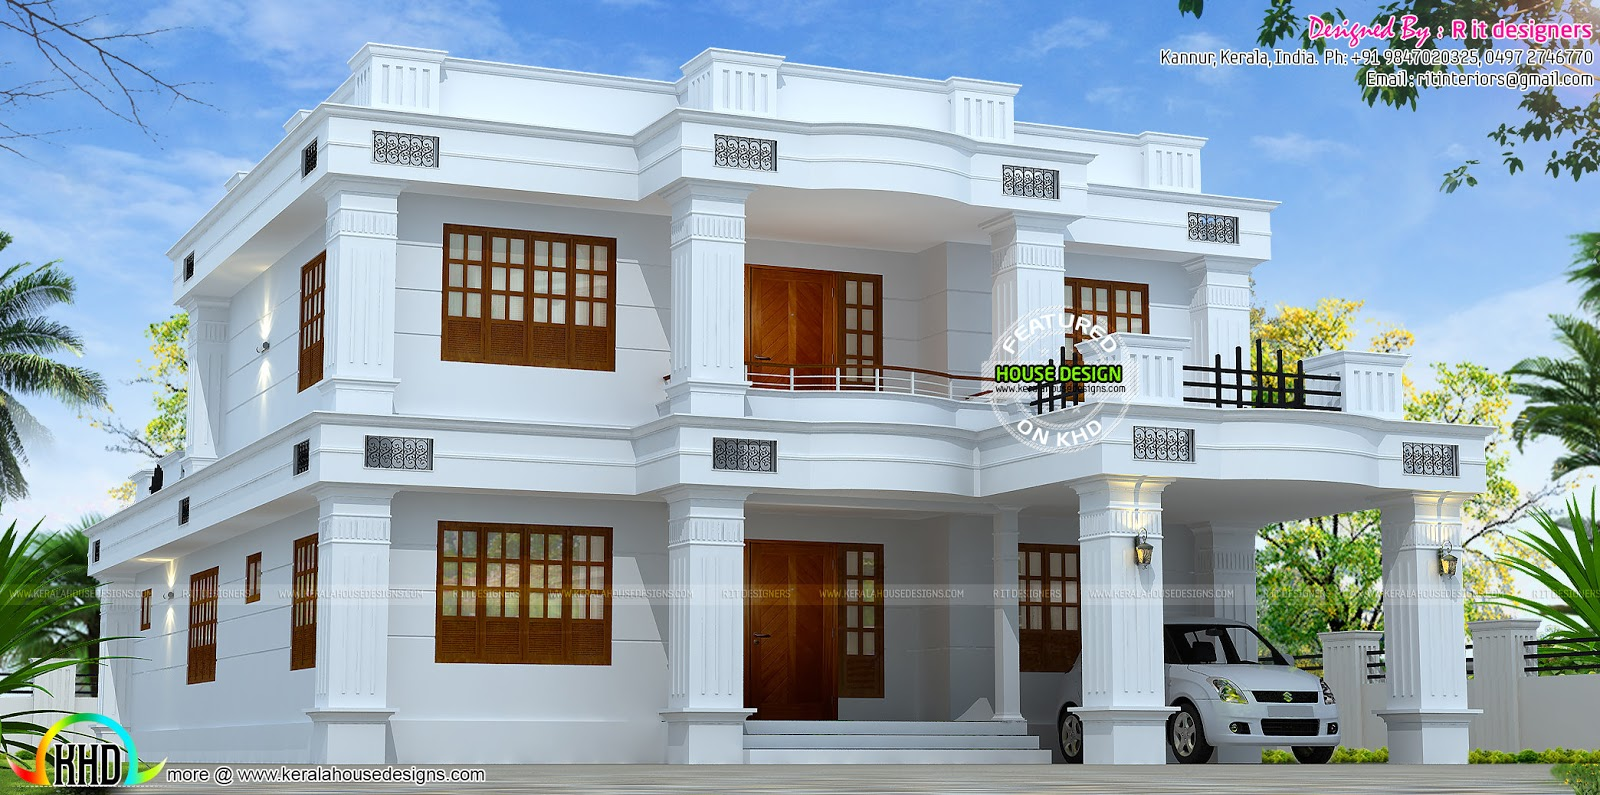 February 2016 kerala home design and floor plans Free indian home plans and designs